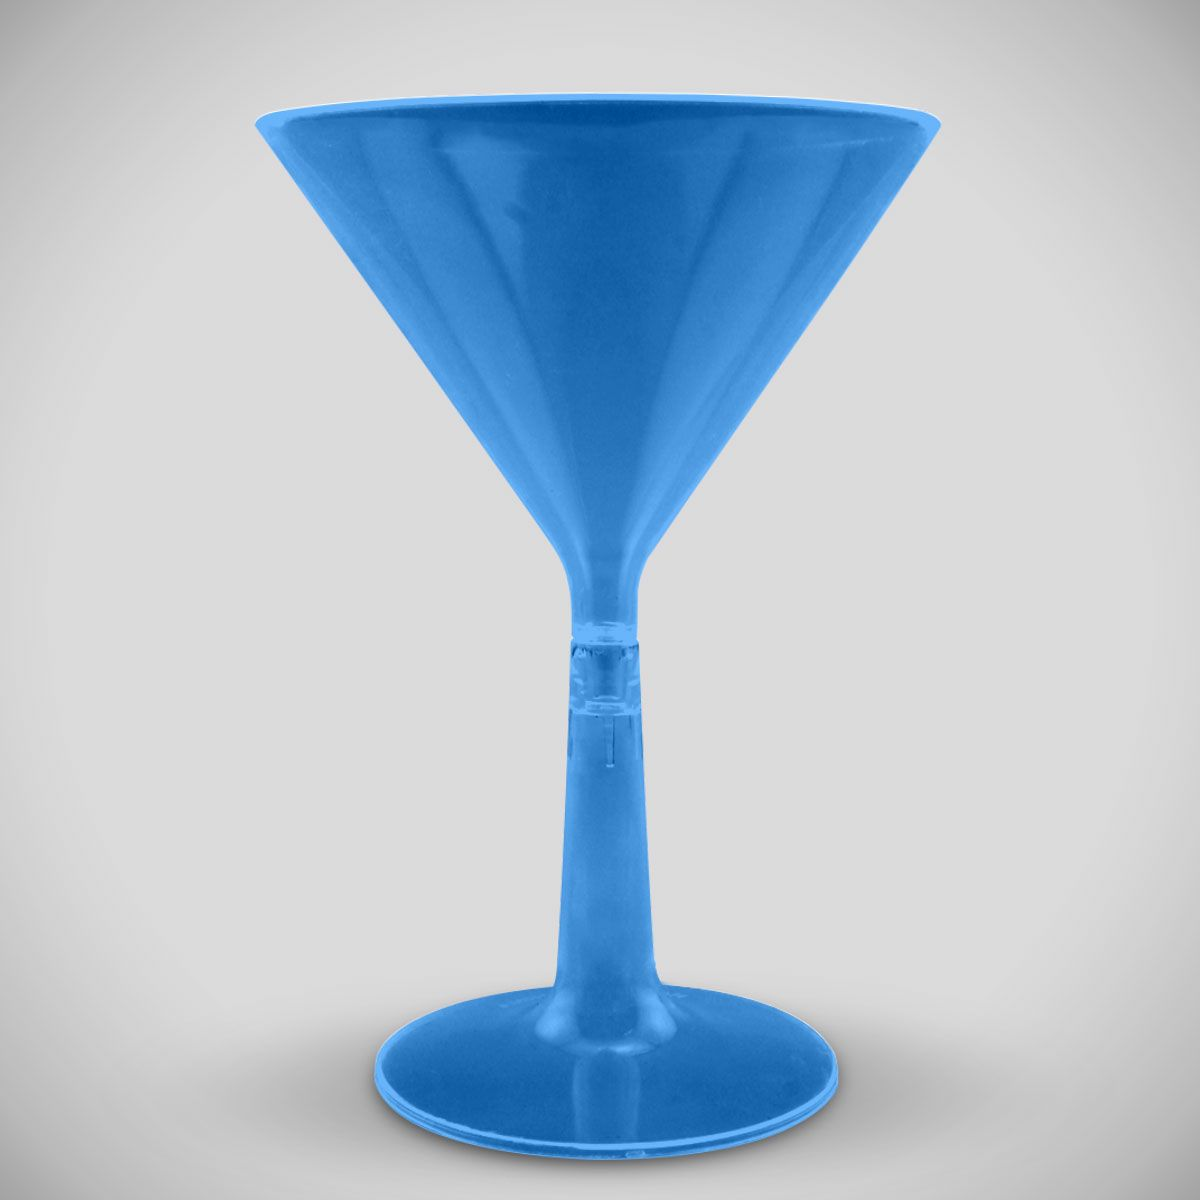 Blue Neon Plastic Martini Glass PAR721EA